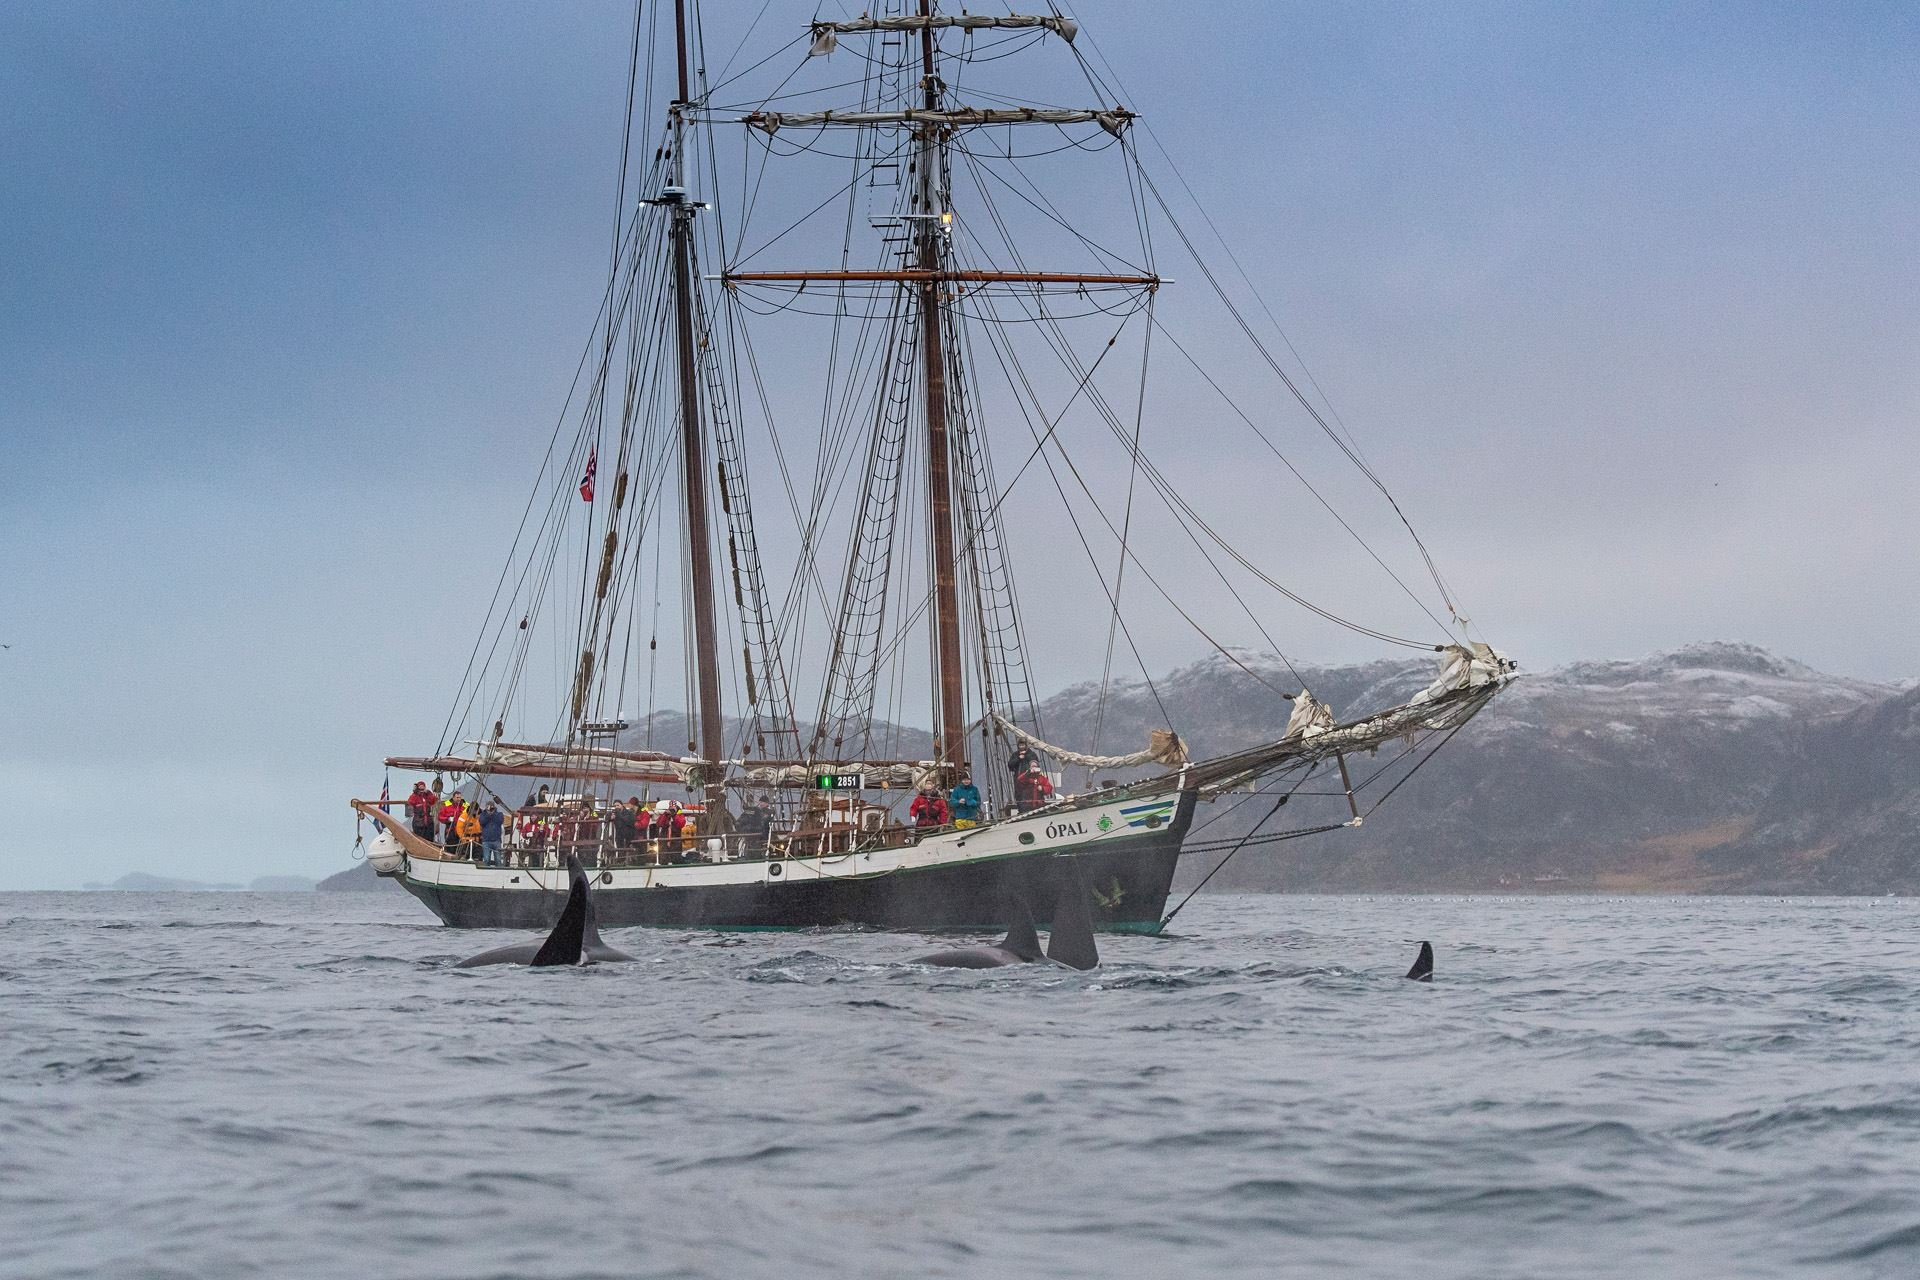 Fjord cruise with traditional schooner Hildur – chance of seeing whales - North Sailing Norway